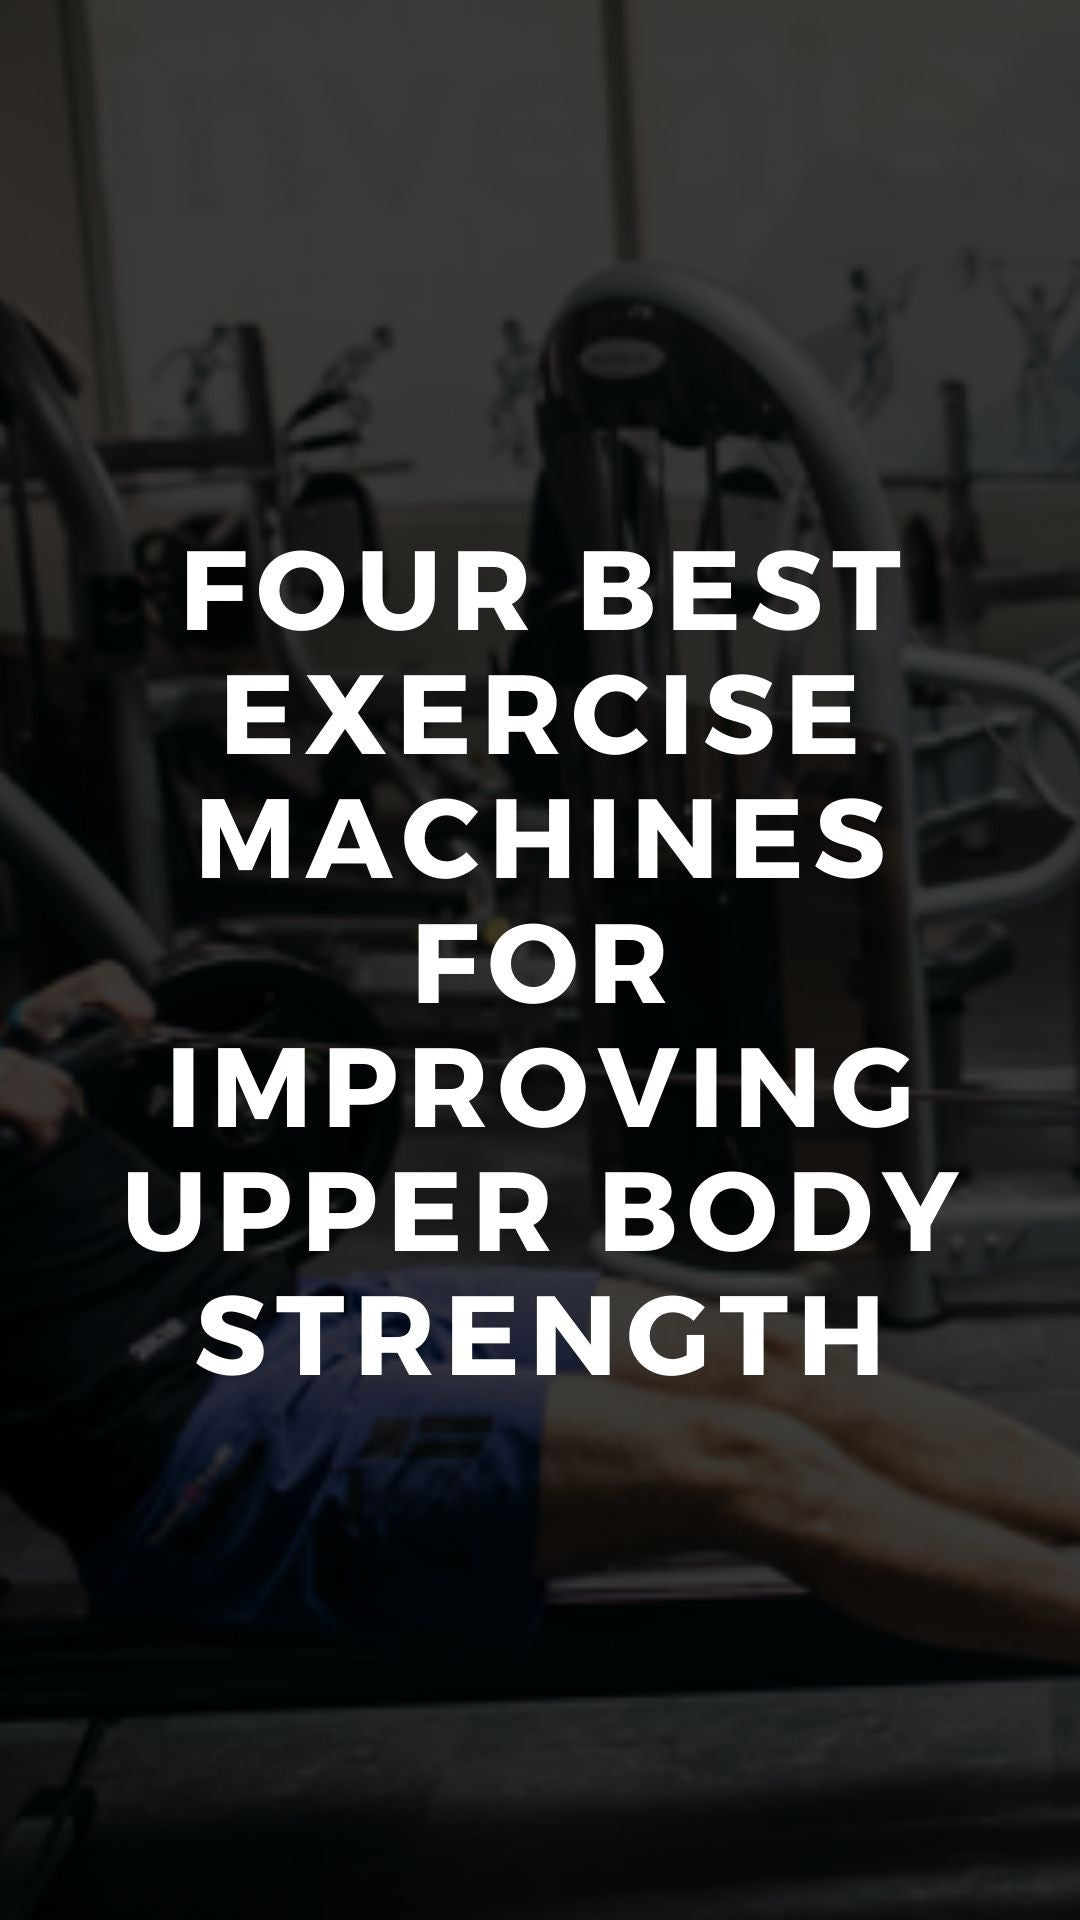 Four Best Exercise Machines for Improving Upper Body Strength